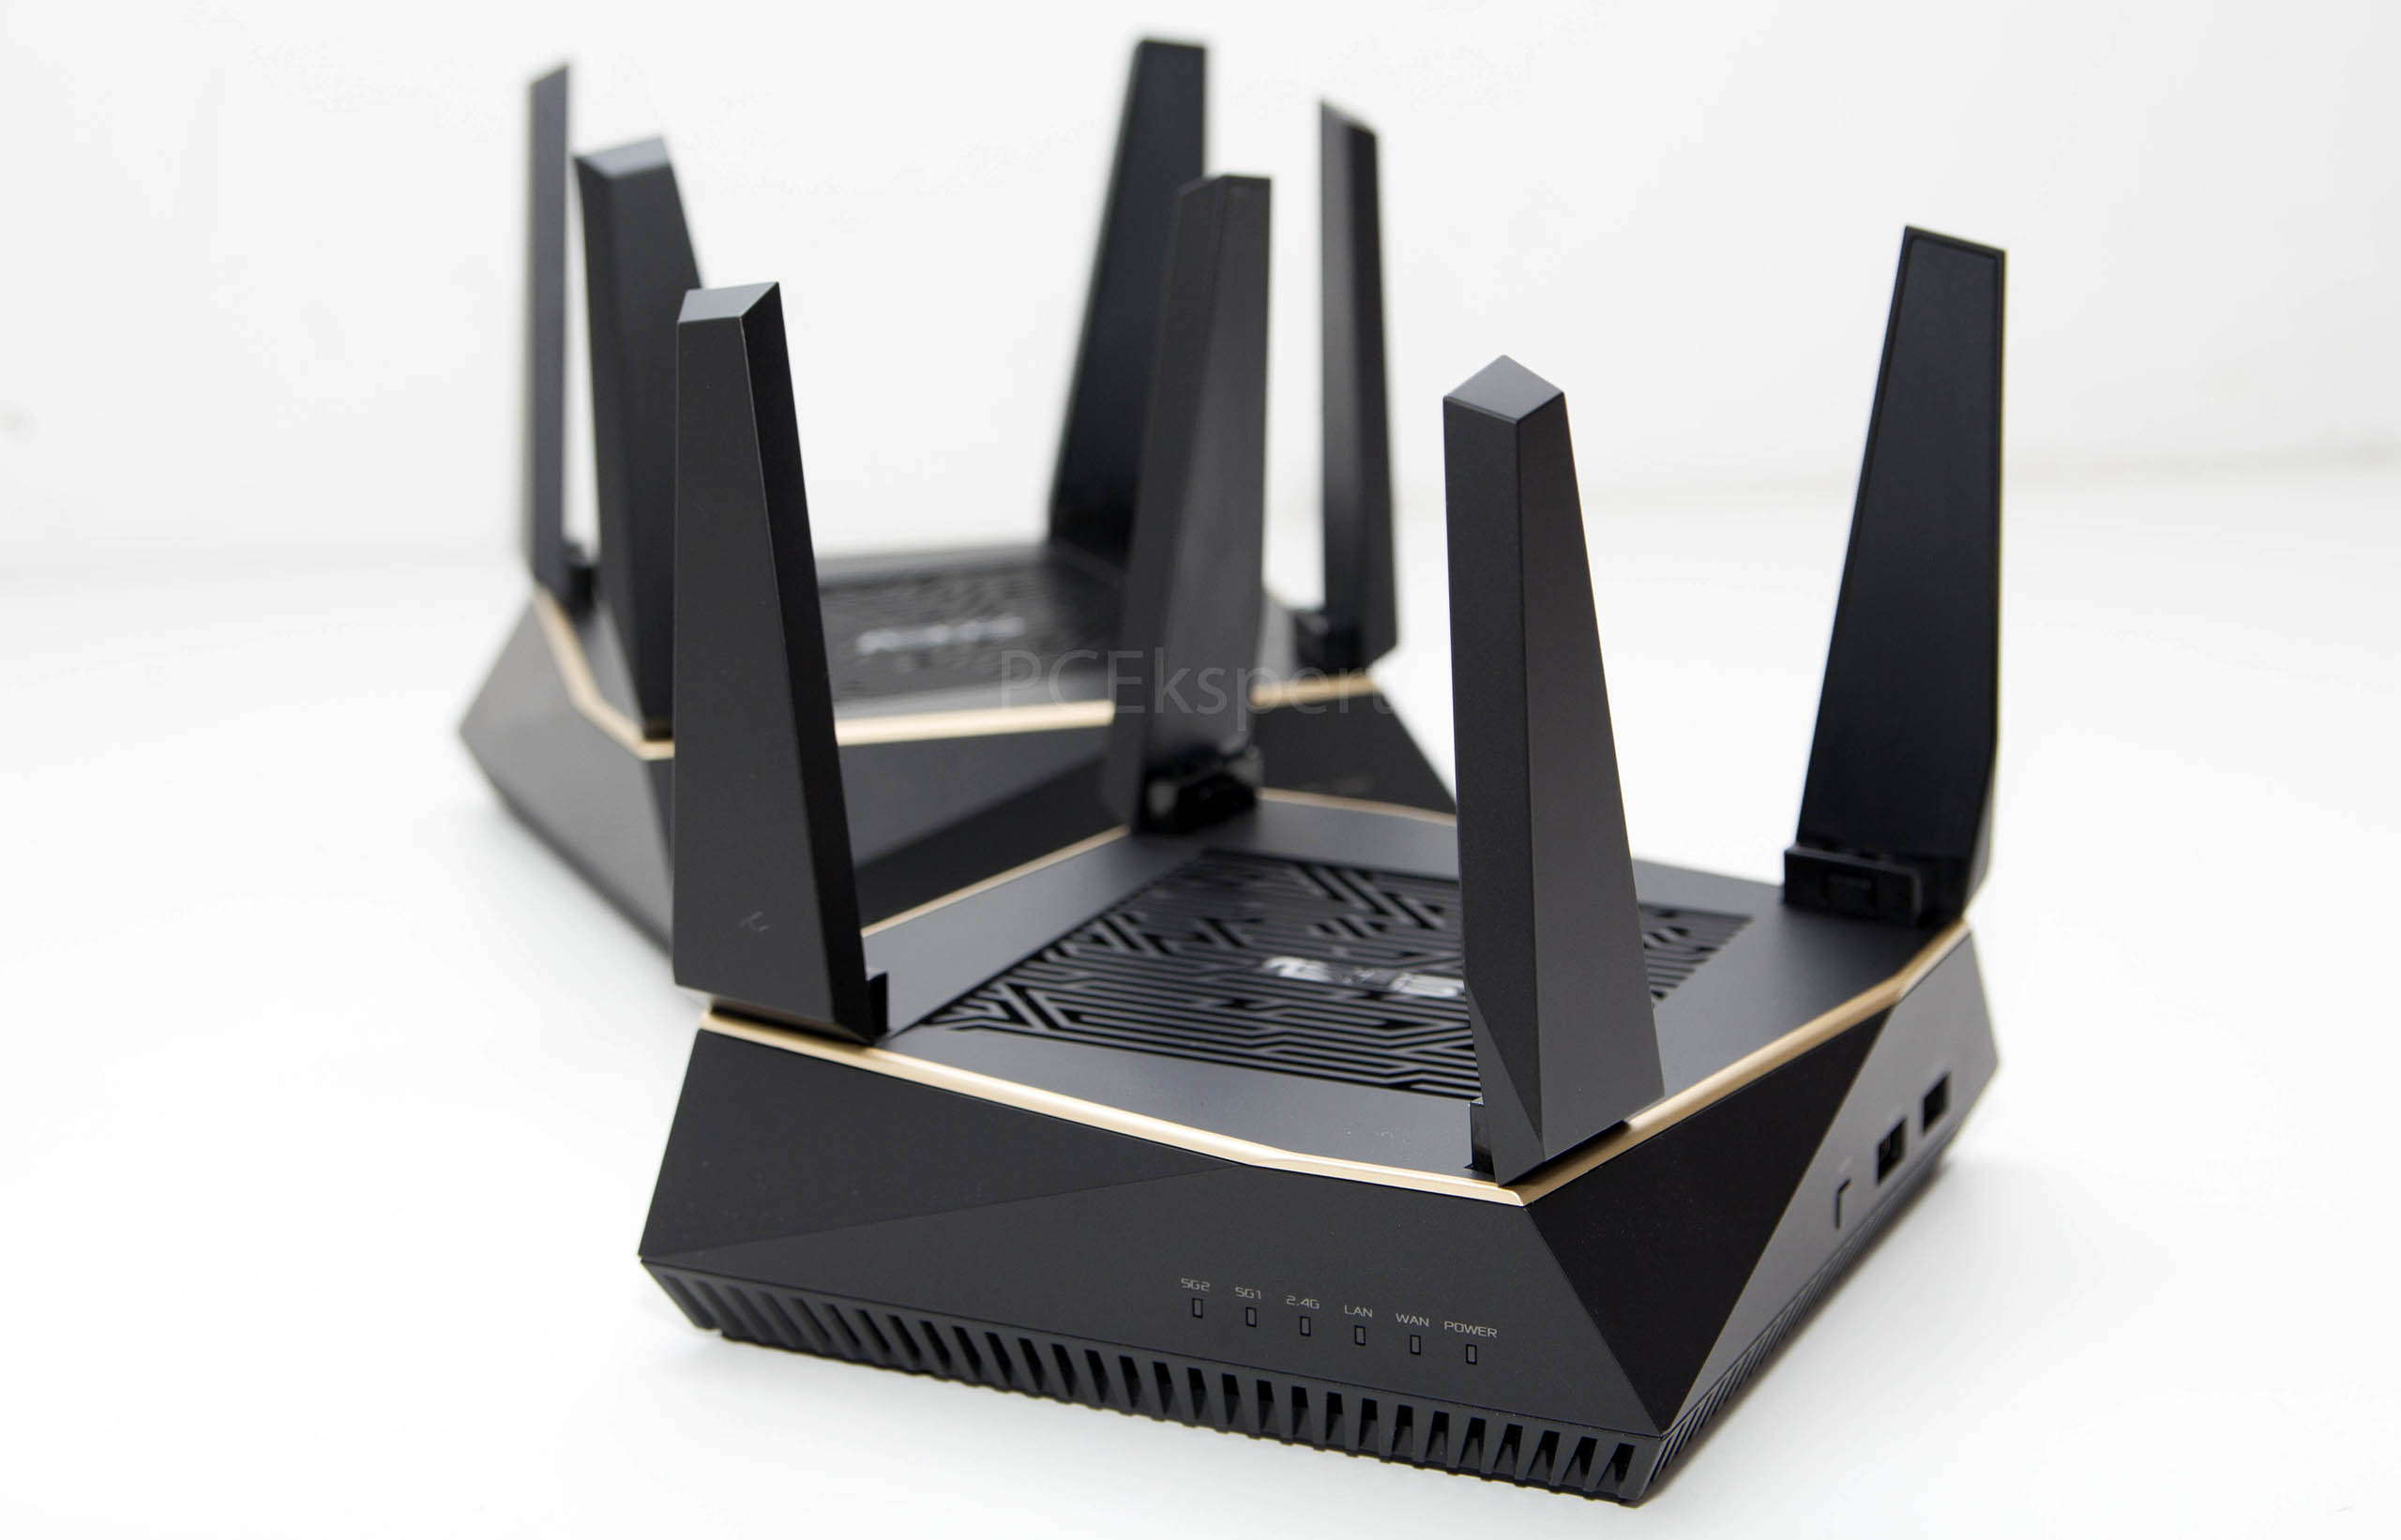 Brzi test – ASUS AX6100 RT-AX92U 2 pack